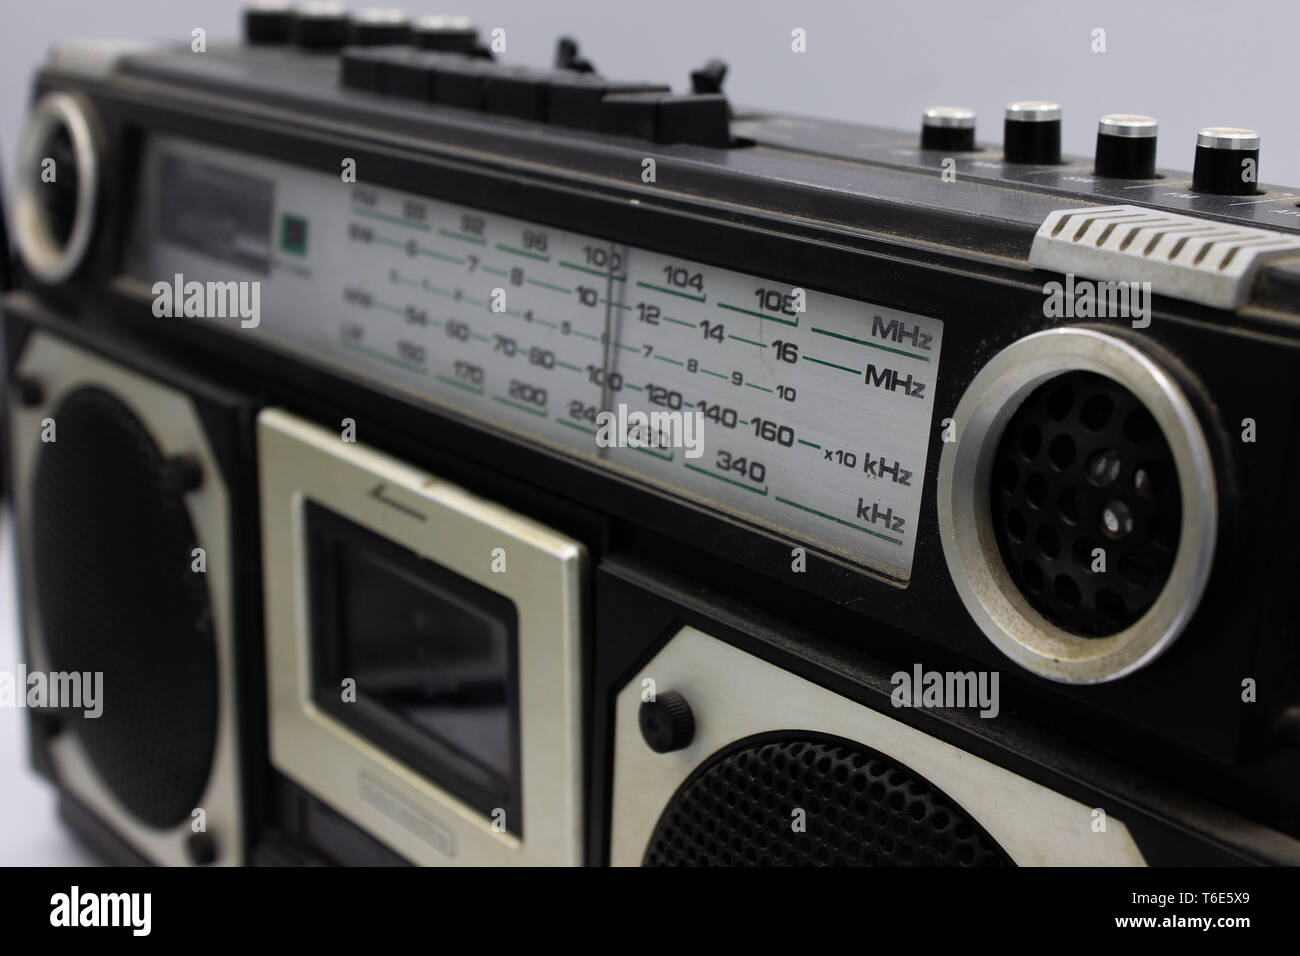 In the 70s and 80s the music was listened to through the cassettes, a magnetic storage device. The radios were very large, containing two speakers and Stock Photo